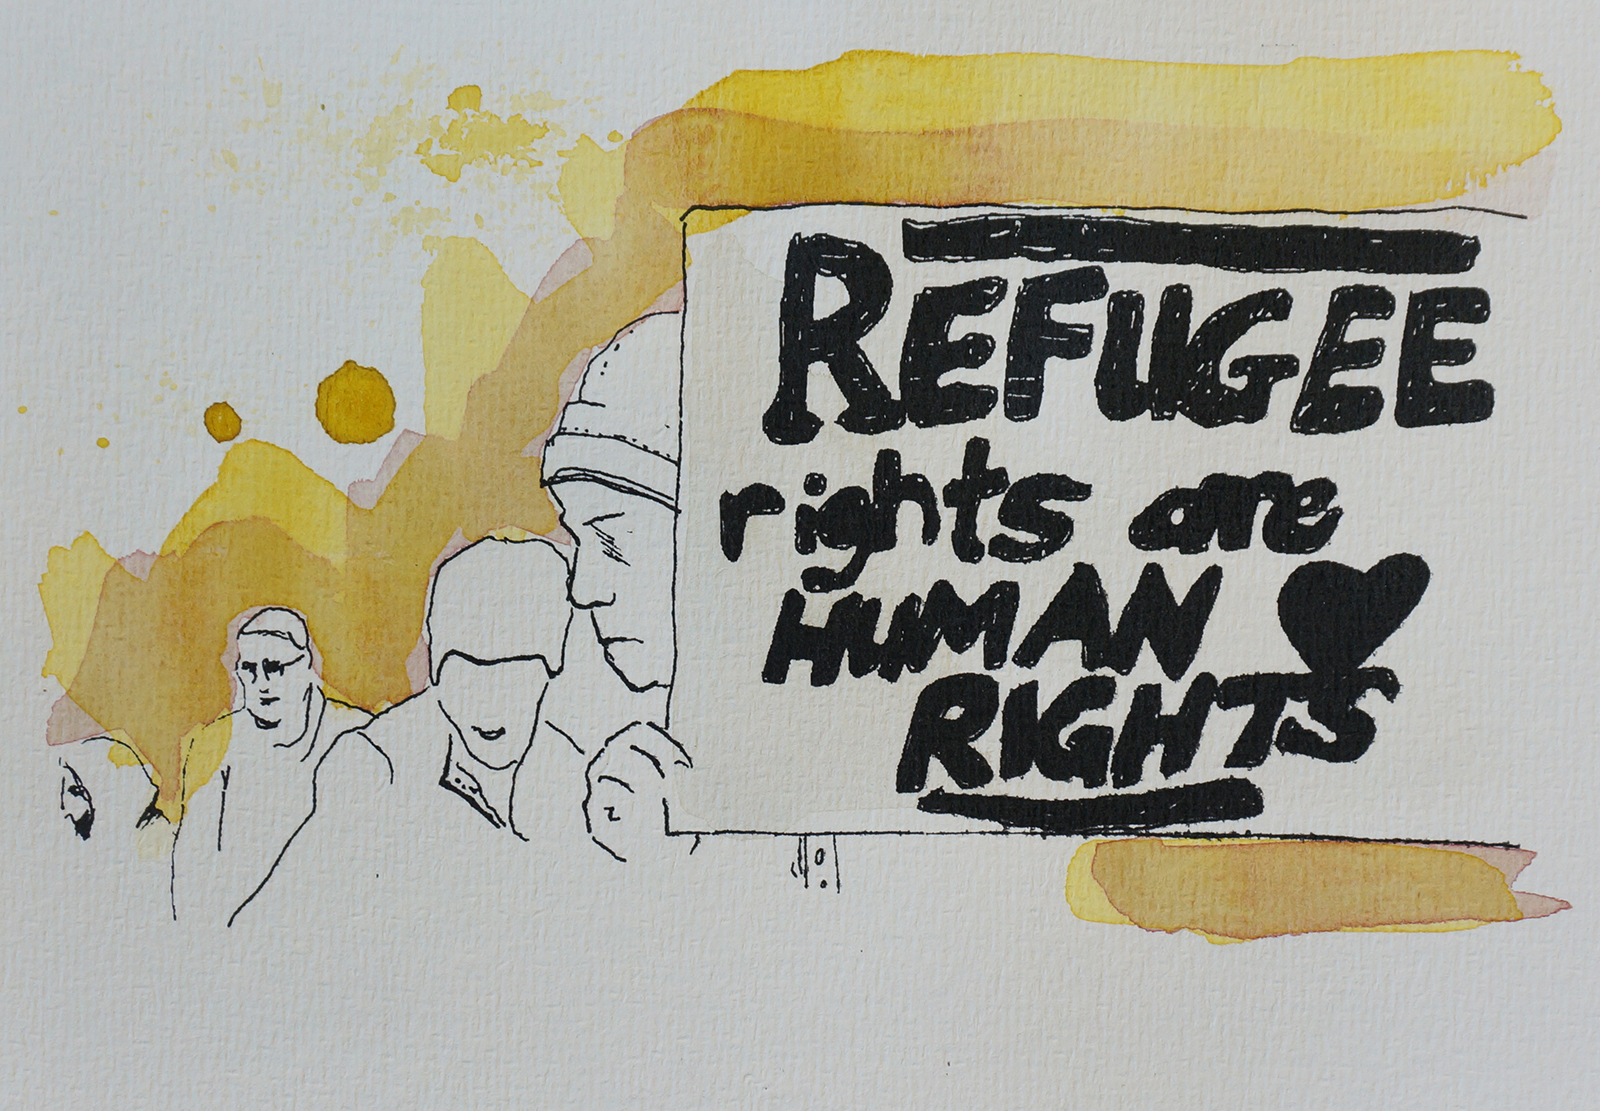 Ape_Bleakney_March Mixed Media - 'Refugee Rights (6)', 6.5''x9.5'', Screen Print + Watercolor, 2018 copy.jpg